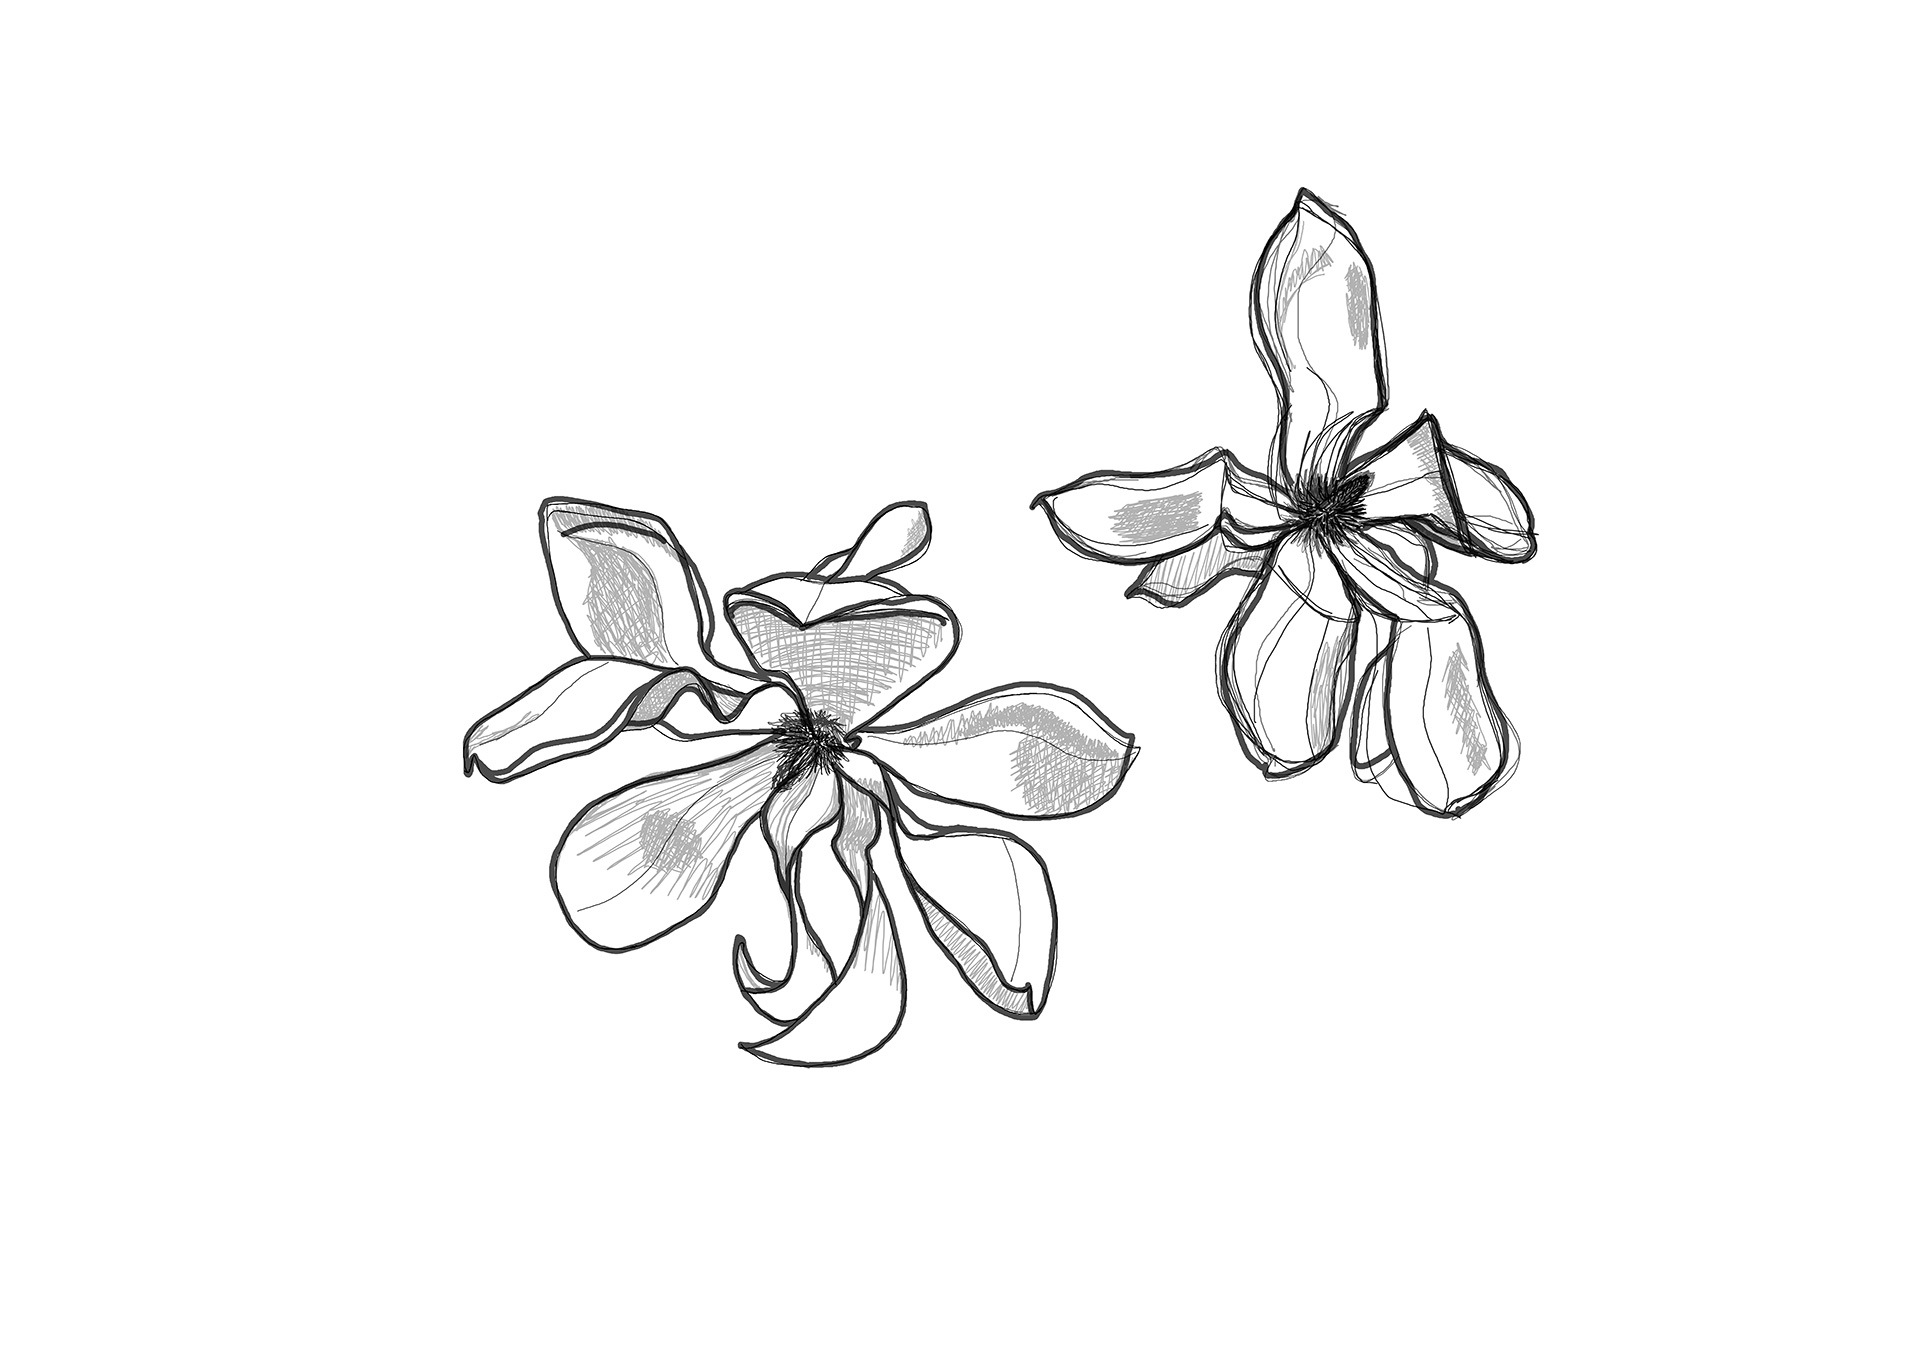 Magnolia Drawing 2, flowers 1 and 2